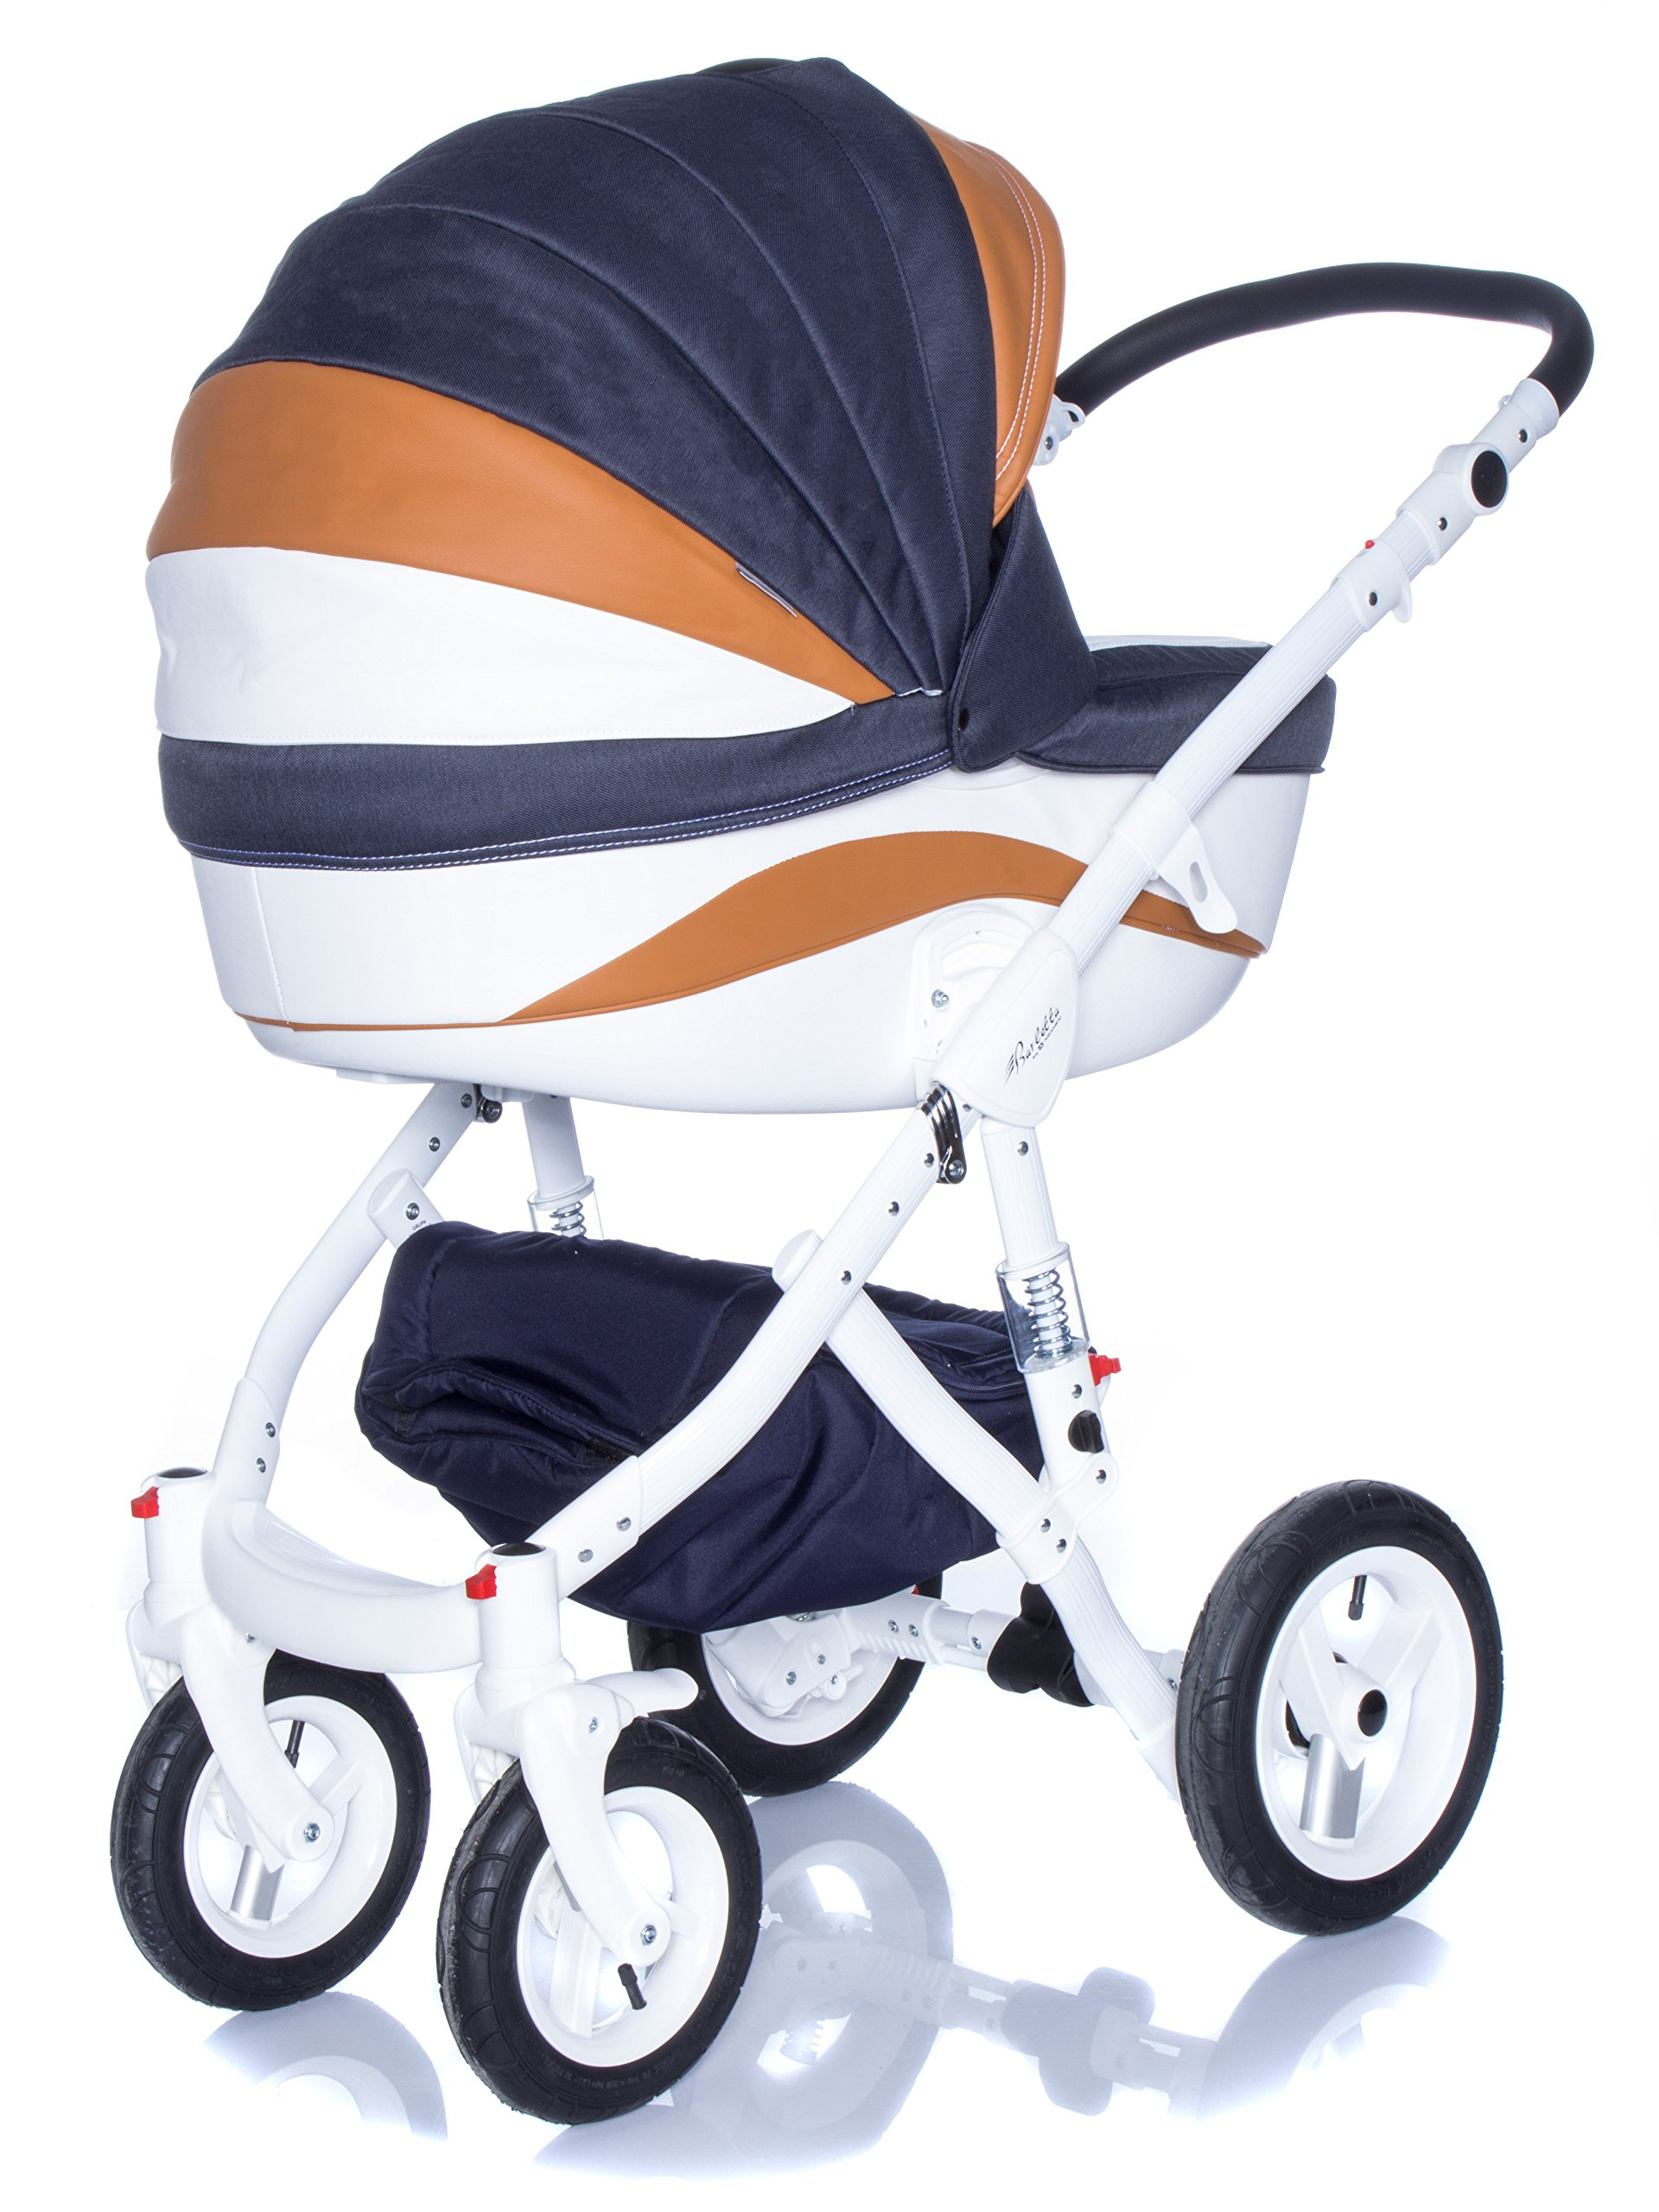 Baby Pram Pushchair Stroller Buggy, Travel System Adamex Barletta New B7 Fox-Navy-White 2in1 + ADAPTORS for CAR Seats: Maxi-COSI CYBEX KIDDY Be Safe Adamex Lockable swivel wheels and lockable side suspension system Light alluminium chassis with polyurethane wheels 2 separate modules + car seats adapters - big and deep baby tub functional sport seat and car seats adapters that can be attached to the following car seats: Maxi-Cosi: City, Cabrio fix, Pebble Cybex: Aton Kiddy: Evoluna i-Size, Evolution Pro 2 Be Safe: iZi Go 3